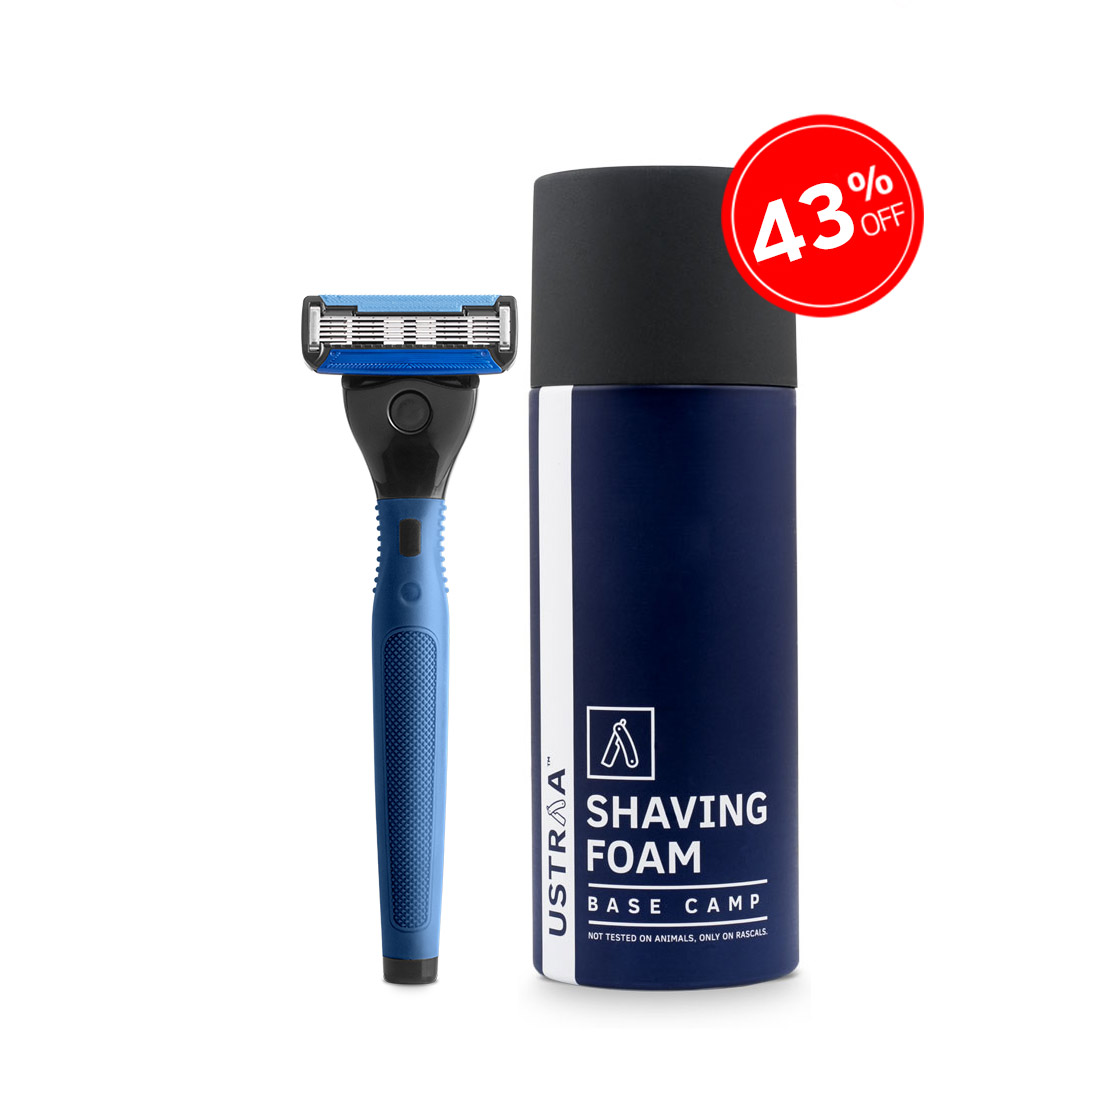 Gear 5 Razor(Blue) and Shaving Foam(Base Camp)